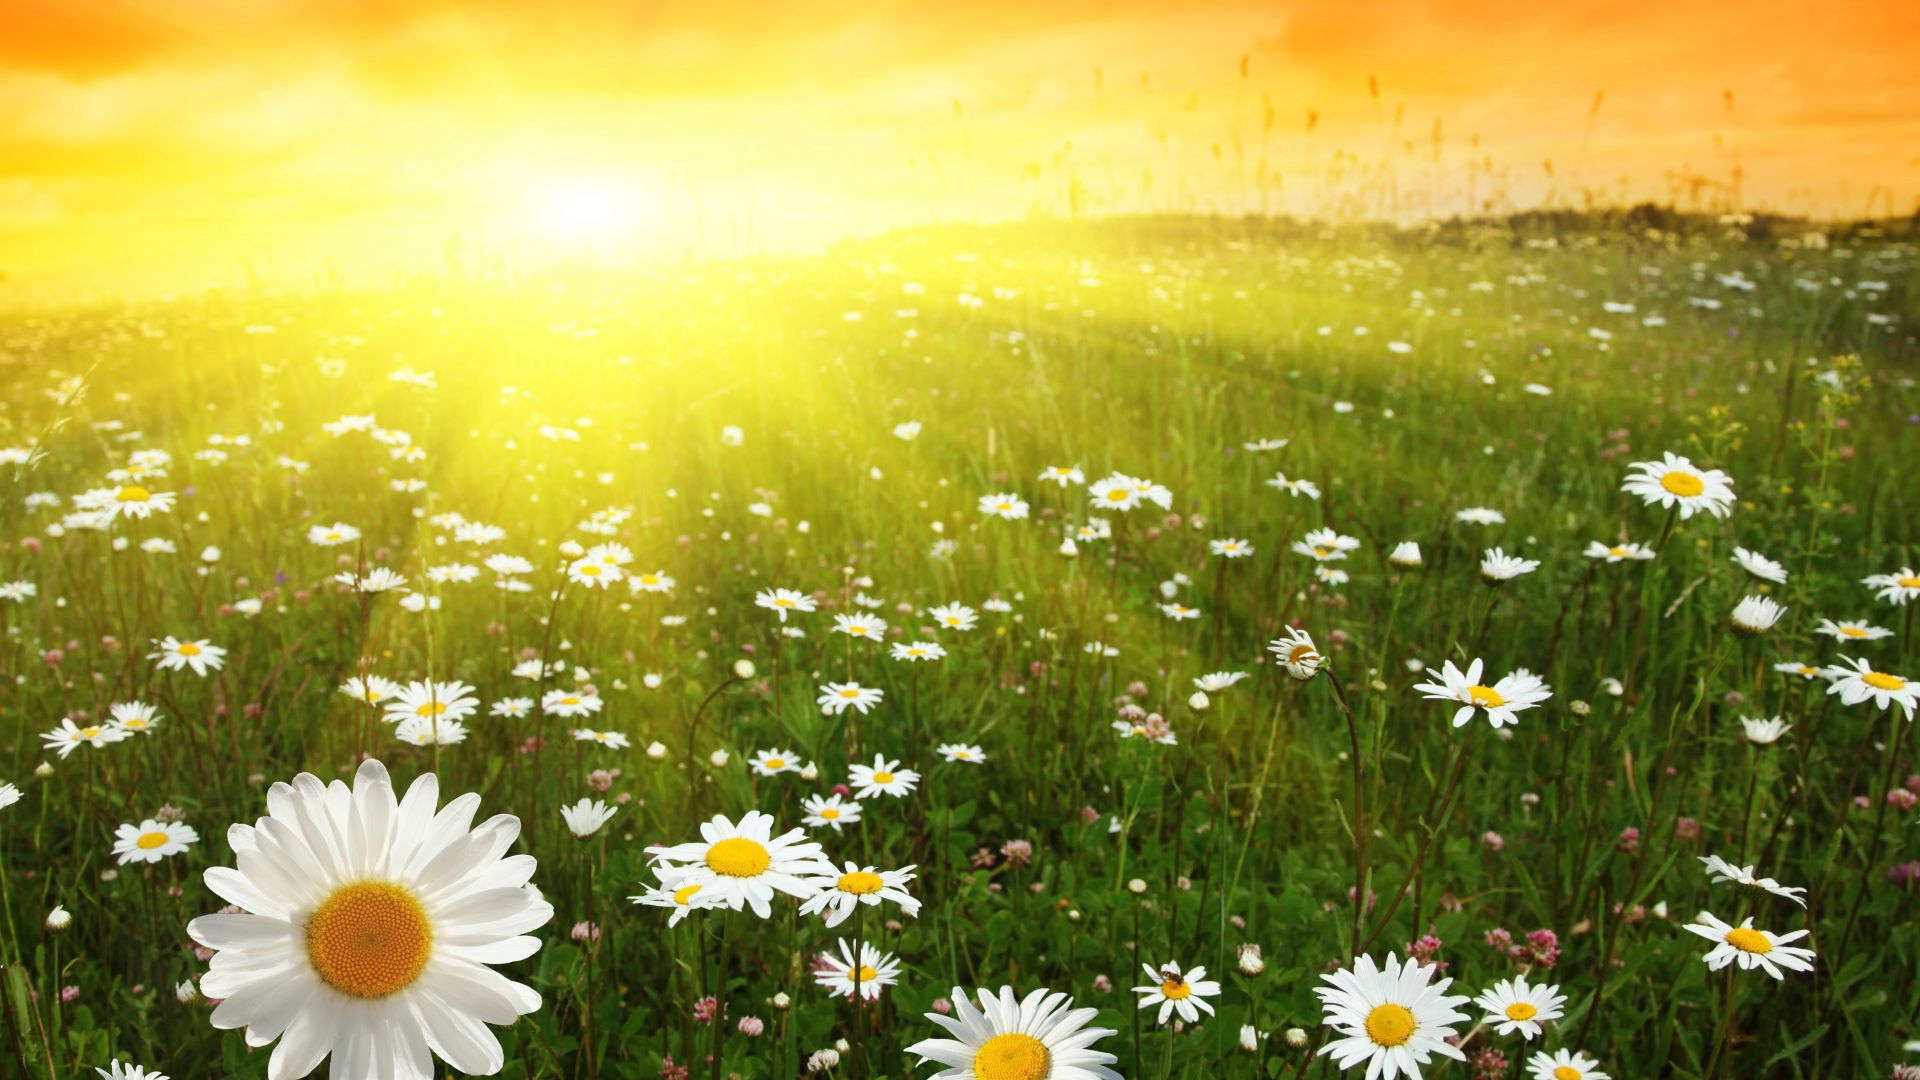 Daisies, 5k, 4k wallpaper, 8k, meadows, sunset (horizontal)